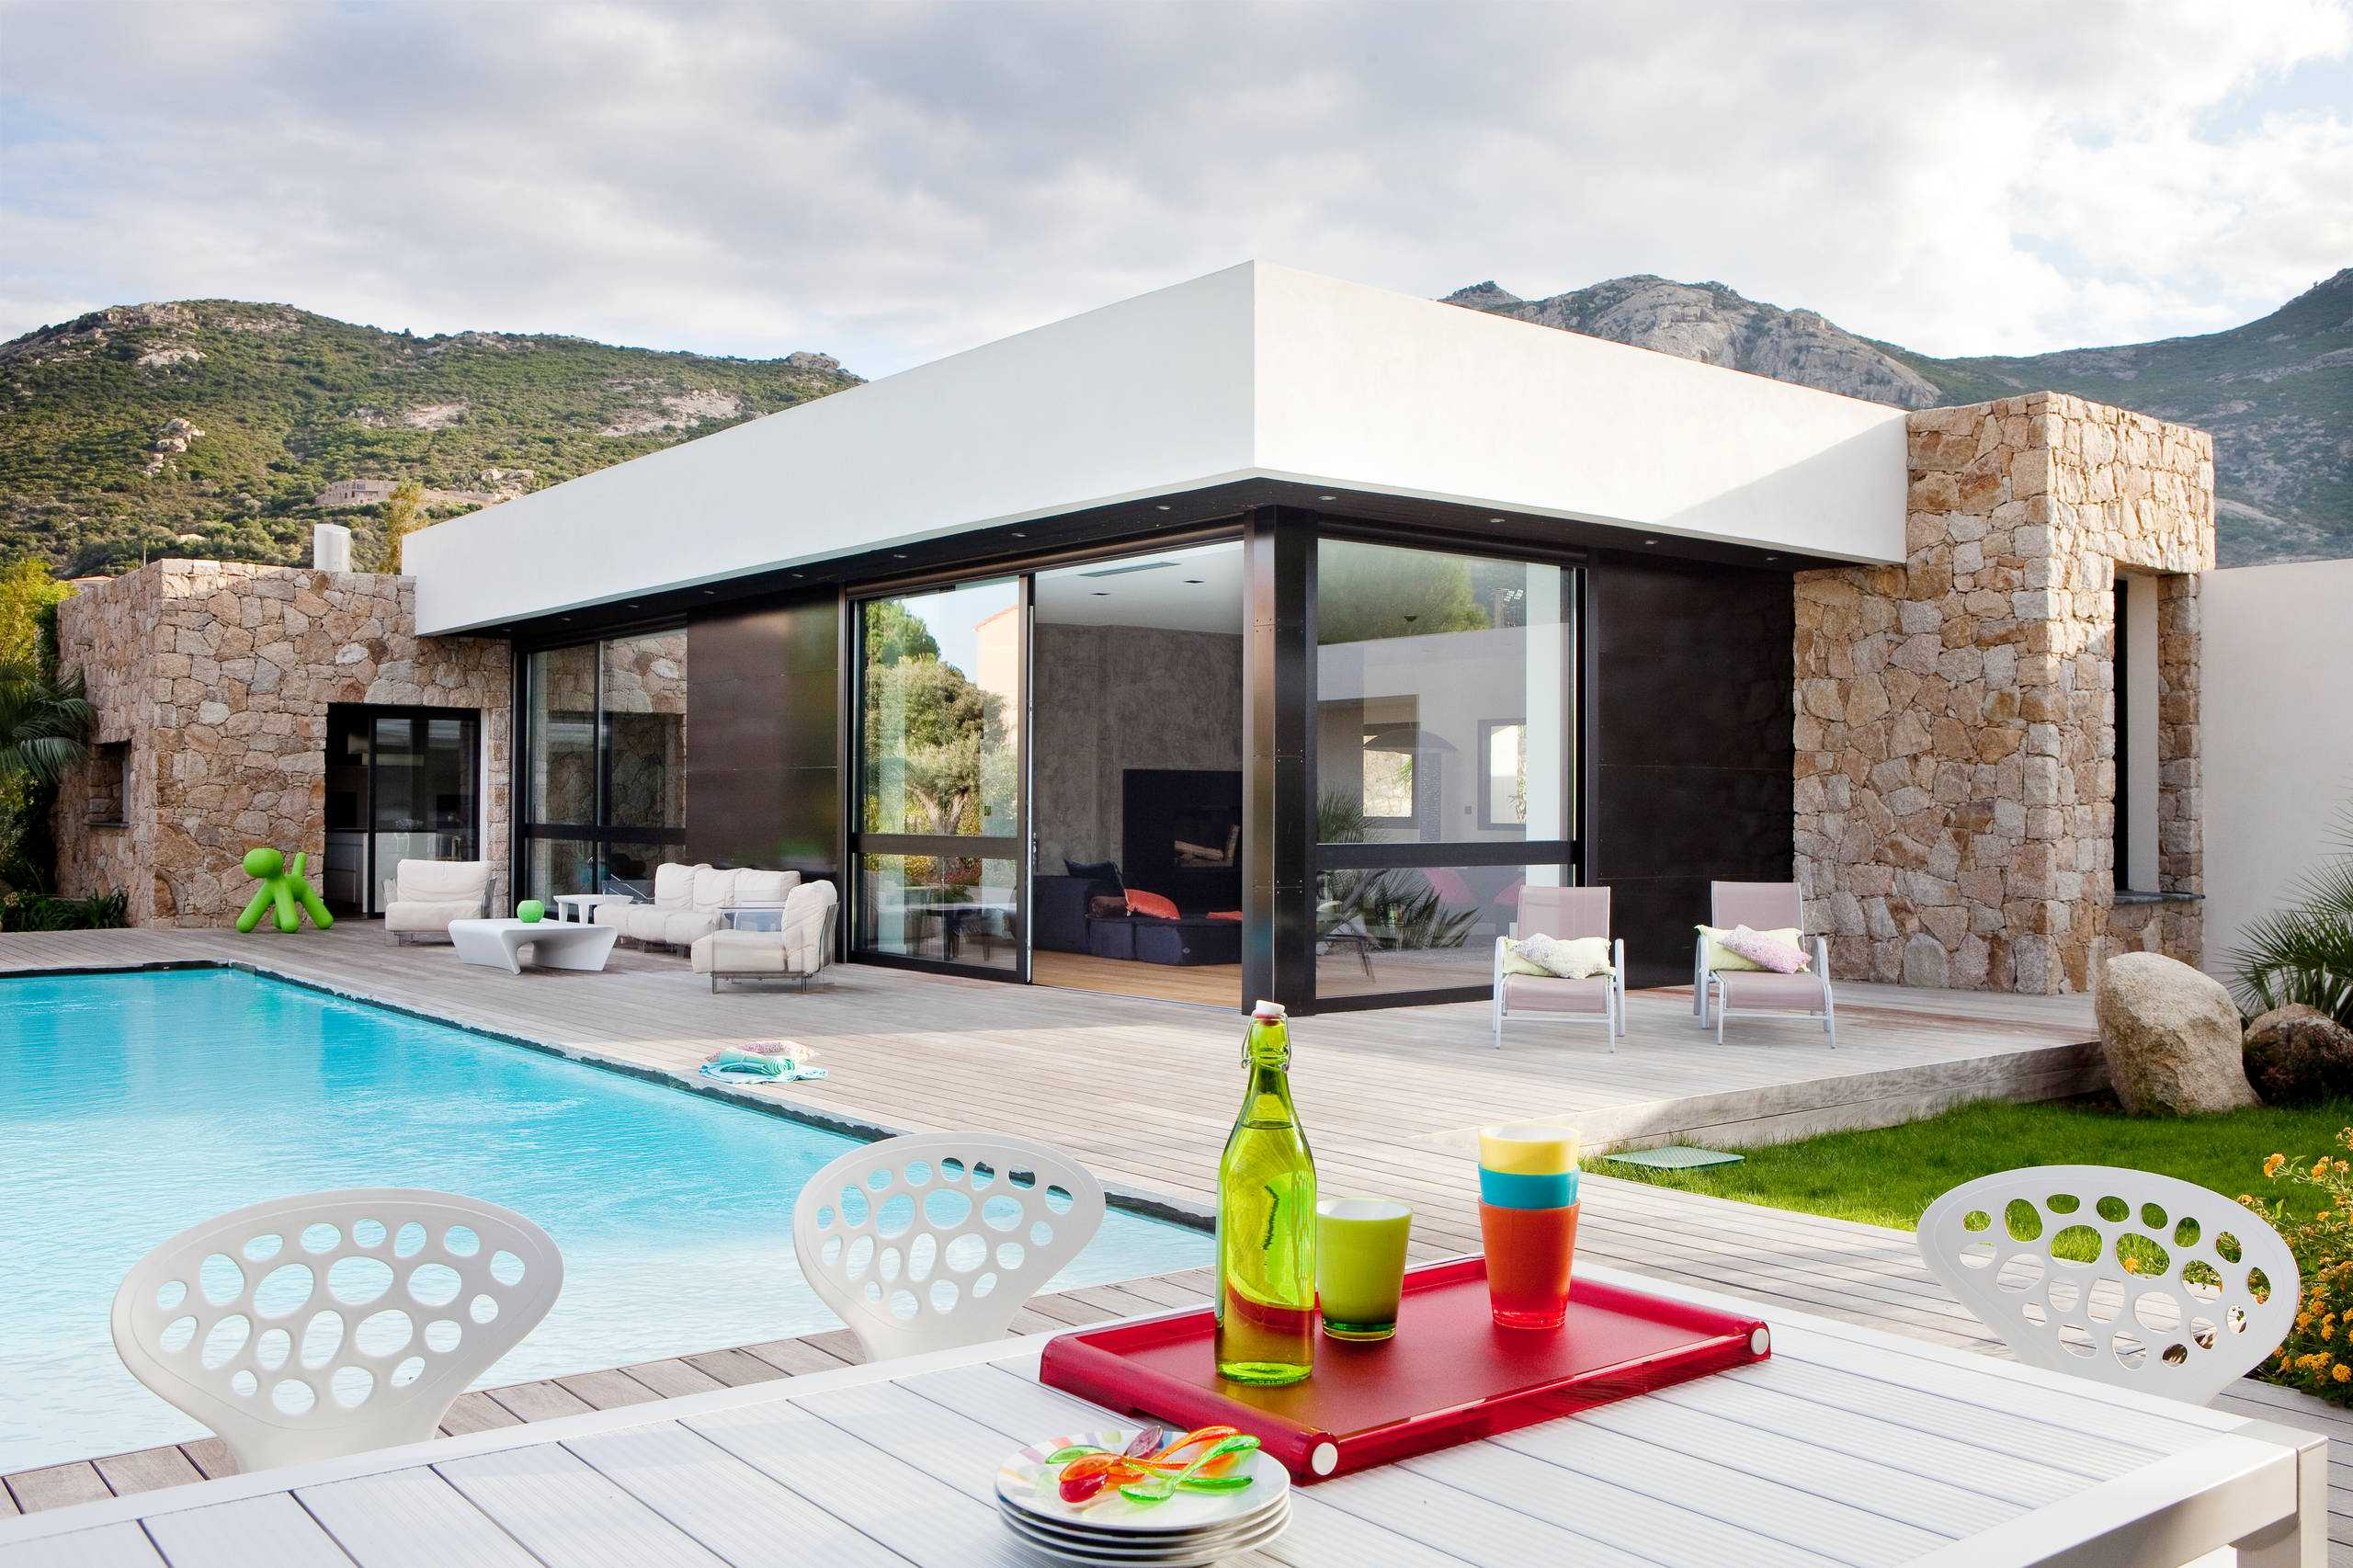 18 Spectacular Modern Patio Designs To Enjoy The Outdoors on Modern Patio Design Ideas id=86114